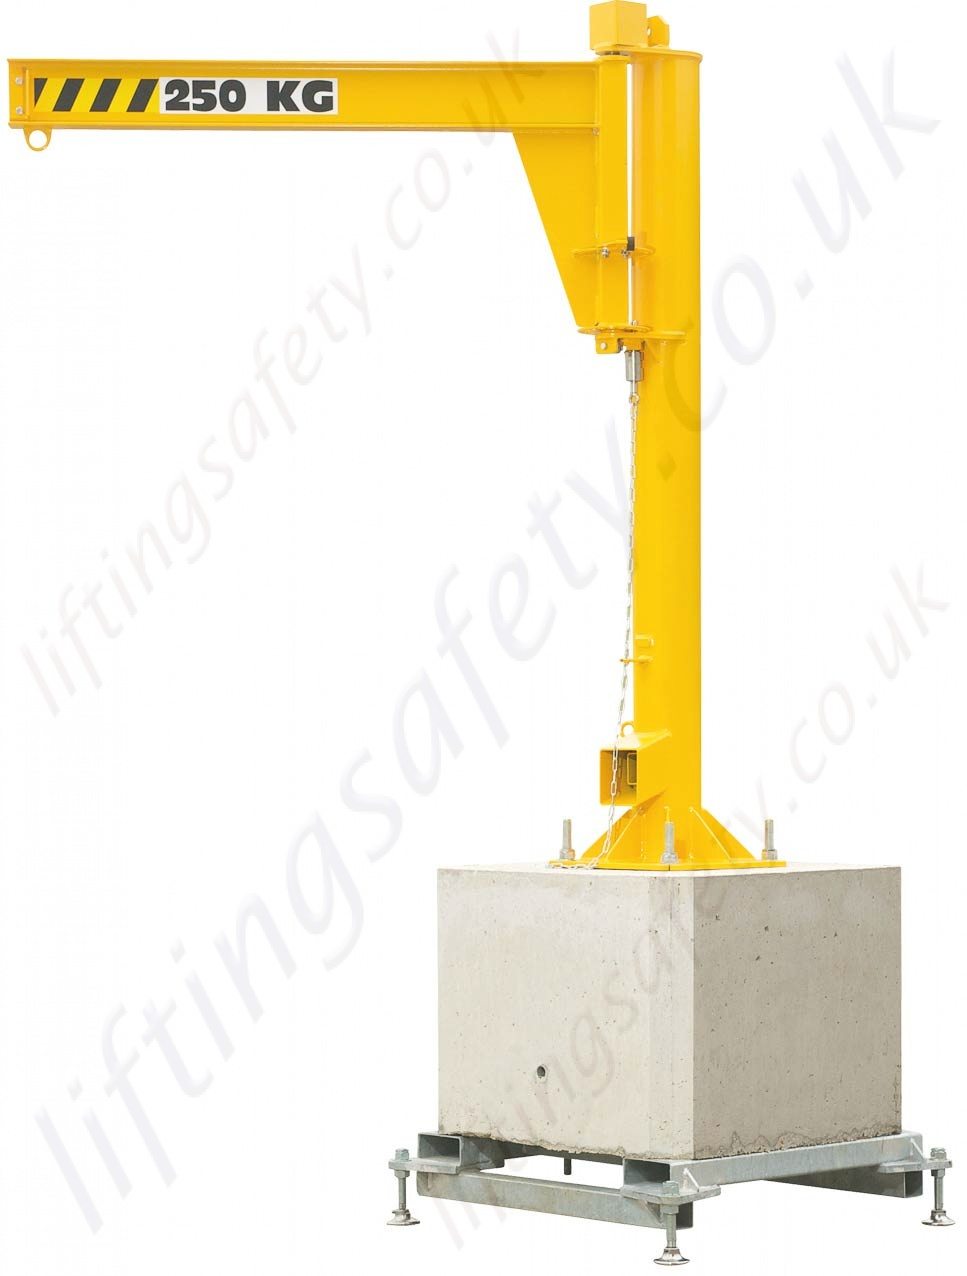 Portable Vacuum Lifting Equipment : Portable jib crane h section lifting beam range from